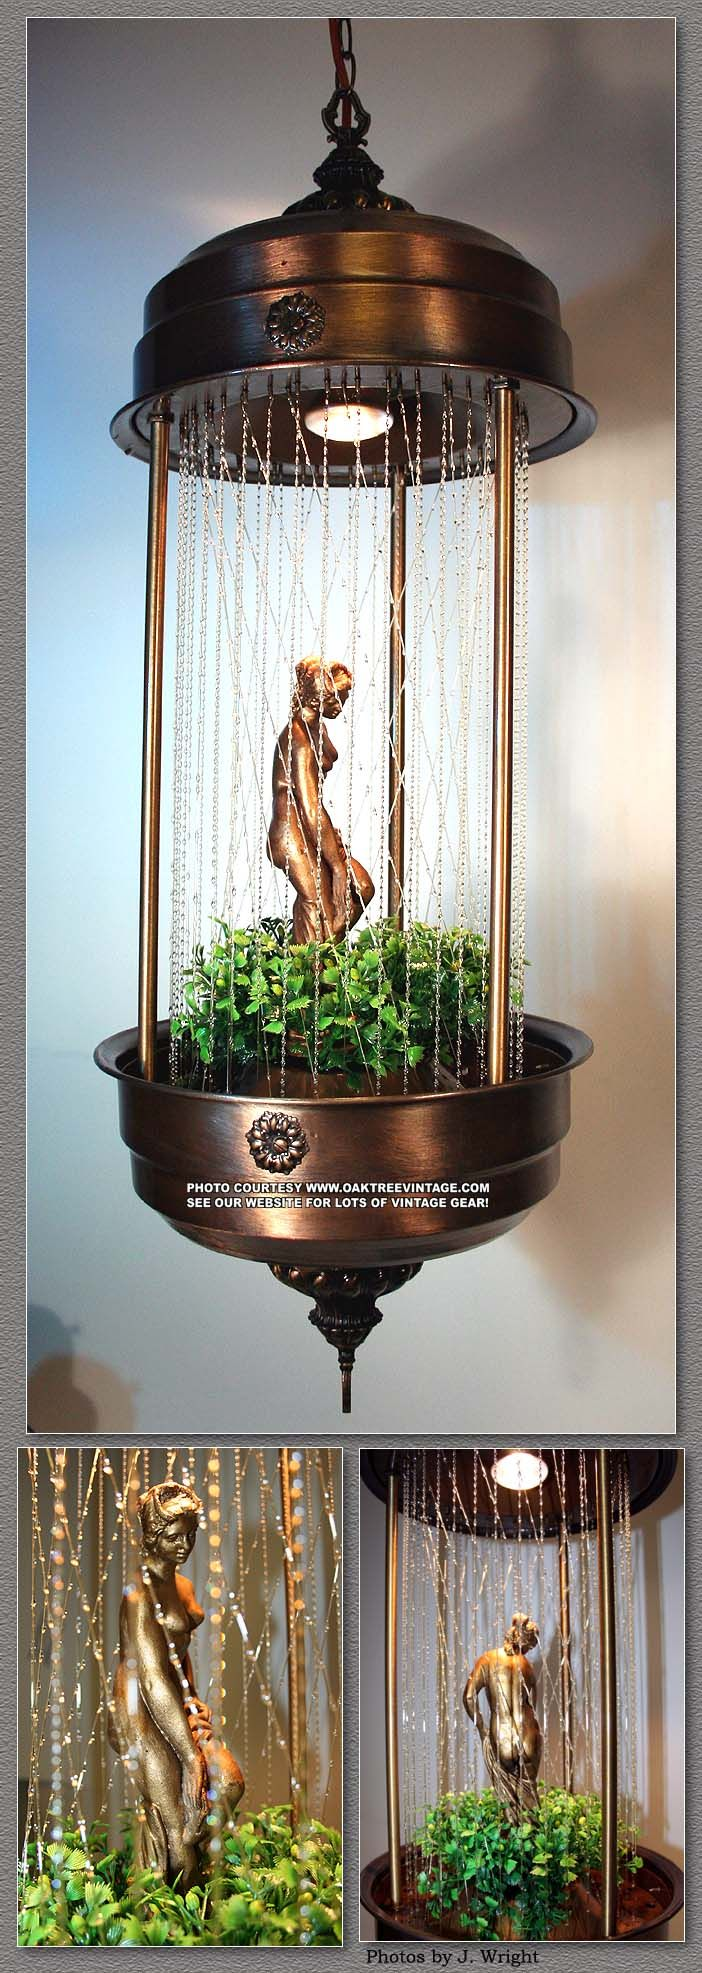 Venus Lady Oil Rain Lamp - my grandparents had one of these when I was little. Thought it was the coolest thing ever.